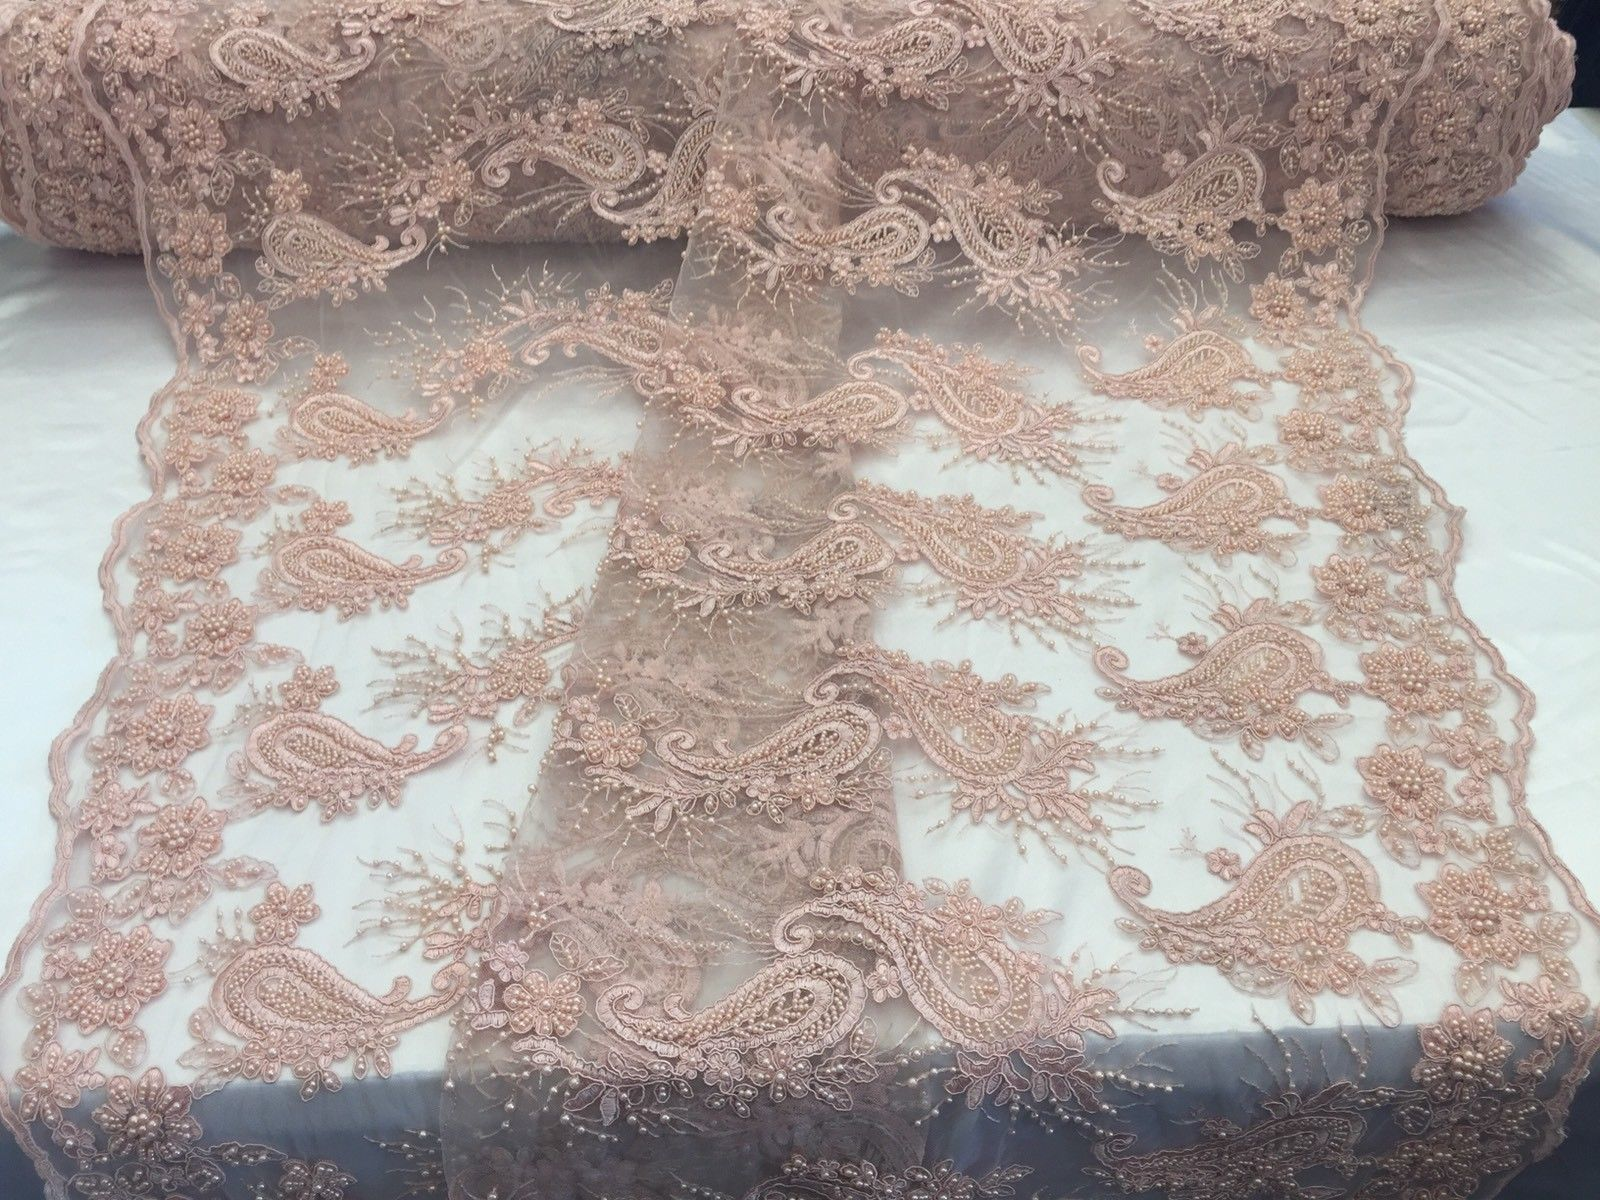 Lace fabric - Wedding Pearls Peach Flower Mesh Dress & Birdal Veil By The Yard - KINGDOM OF FABRICS